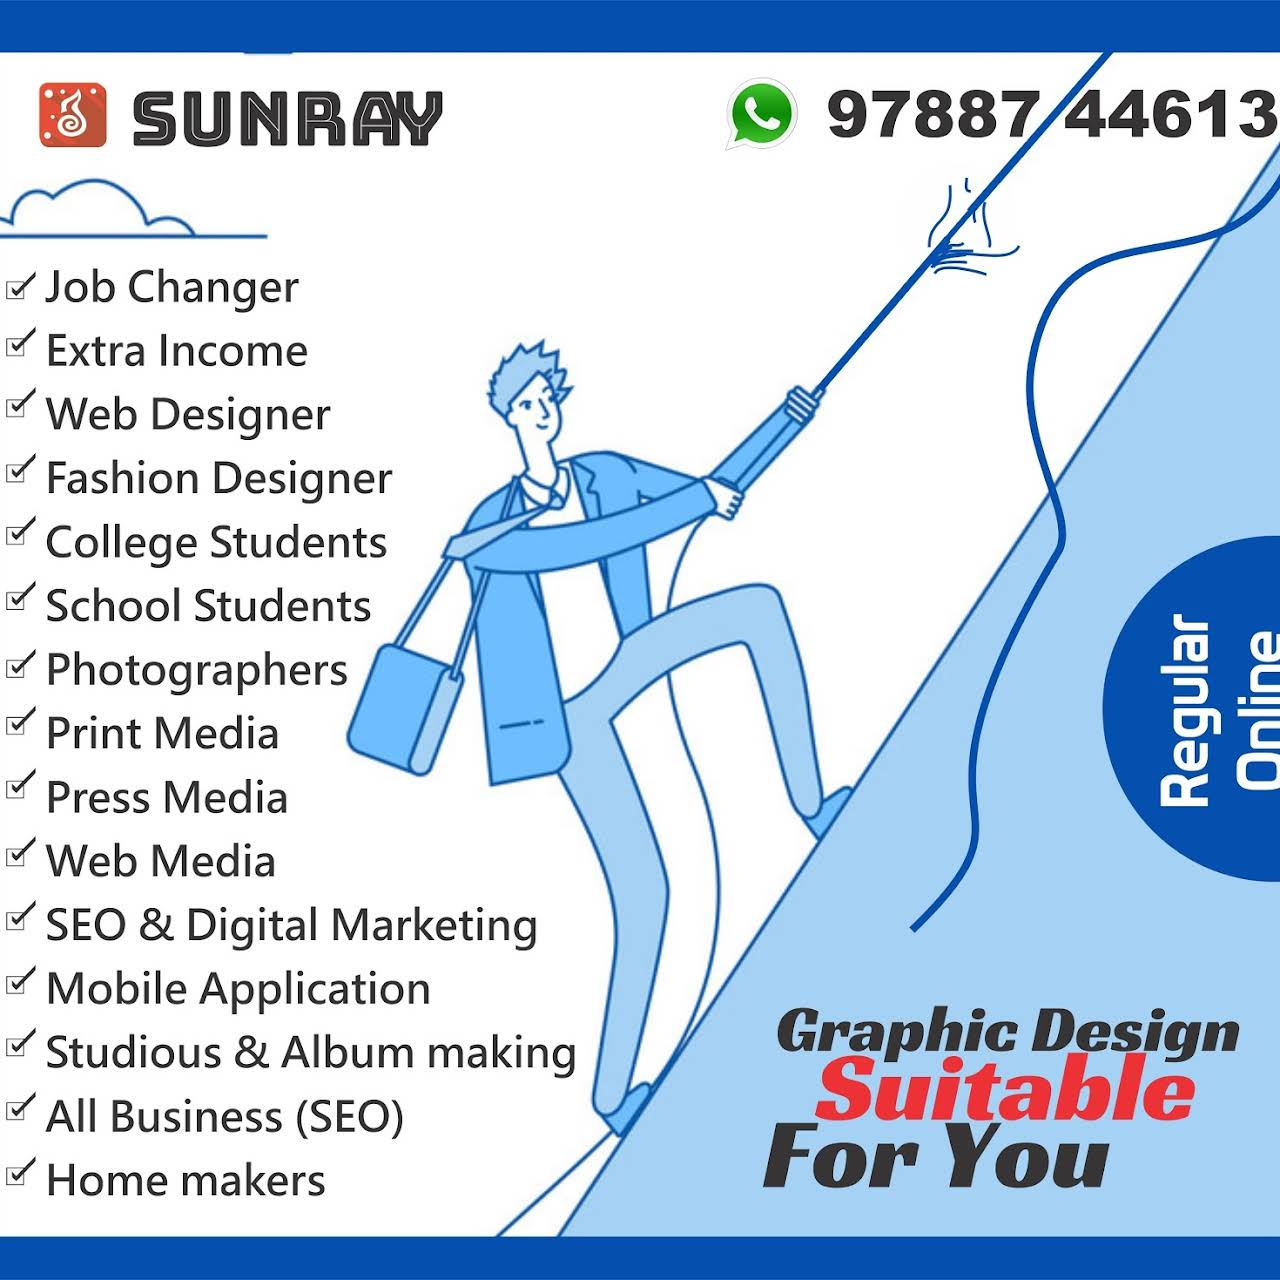 Sunray Graphic Online Design Training Placement Photoshop Coreldraw Training In Coimbatore Graphic Designer In Coimbatore